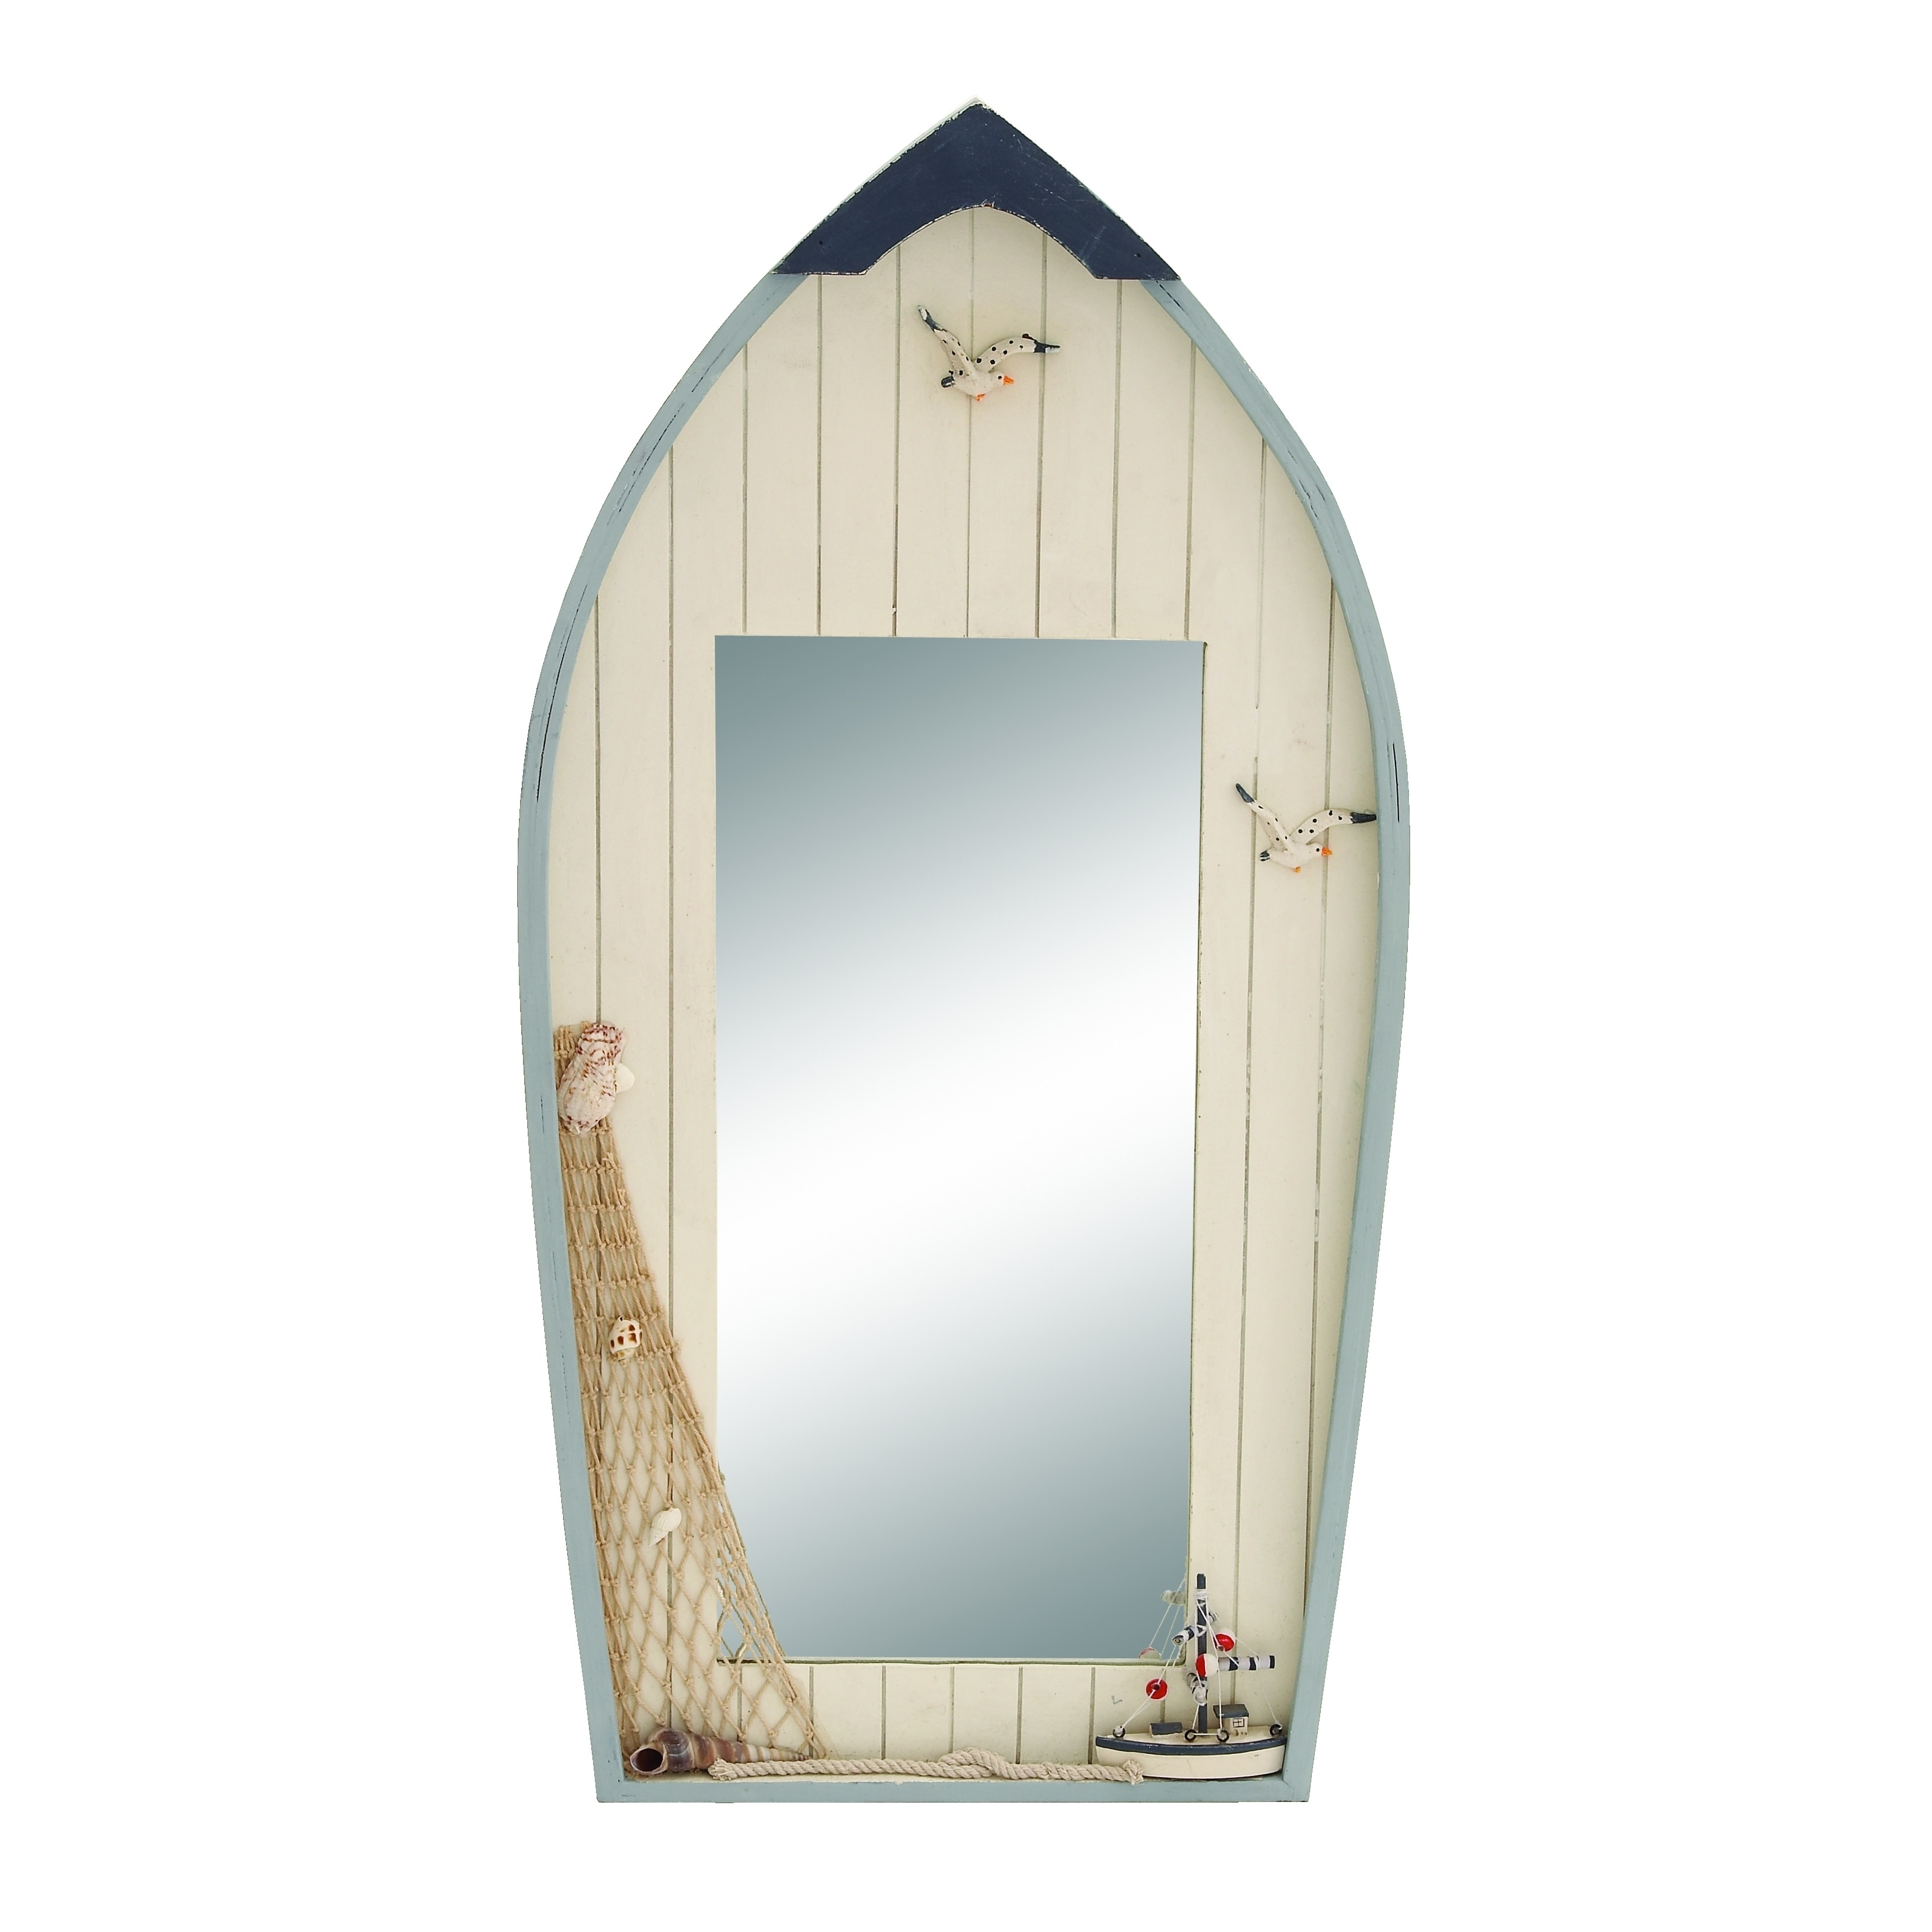 Studio 350 Seaside Nautical Row Boat Mirror Decor With Fi...